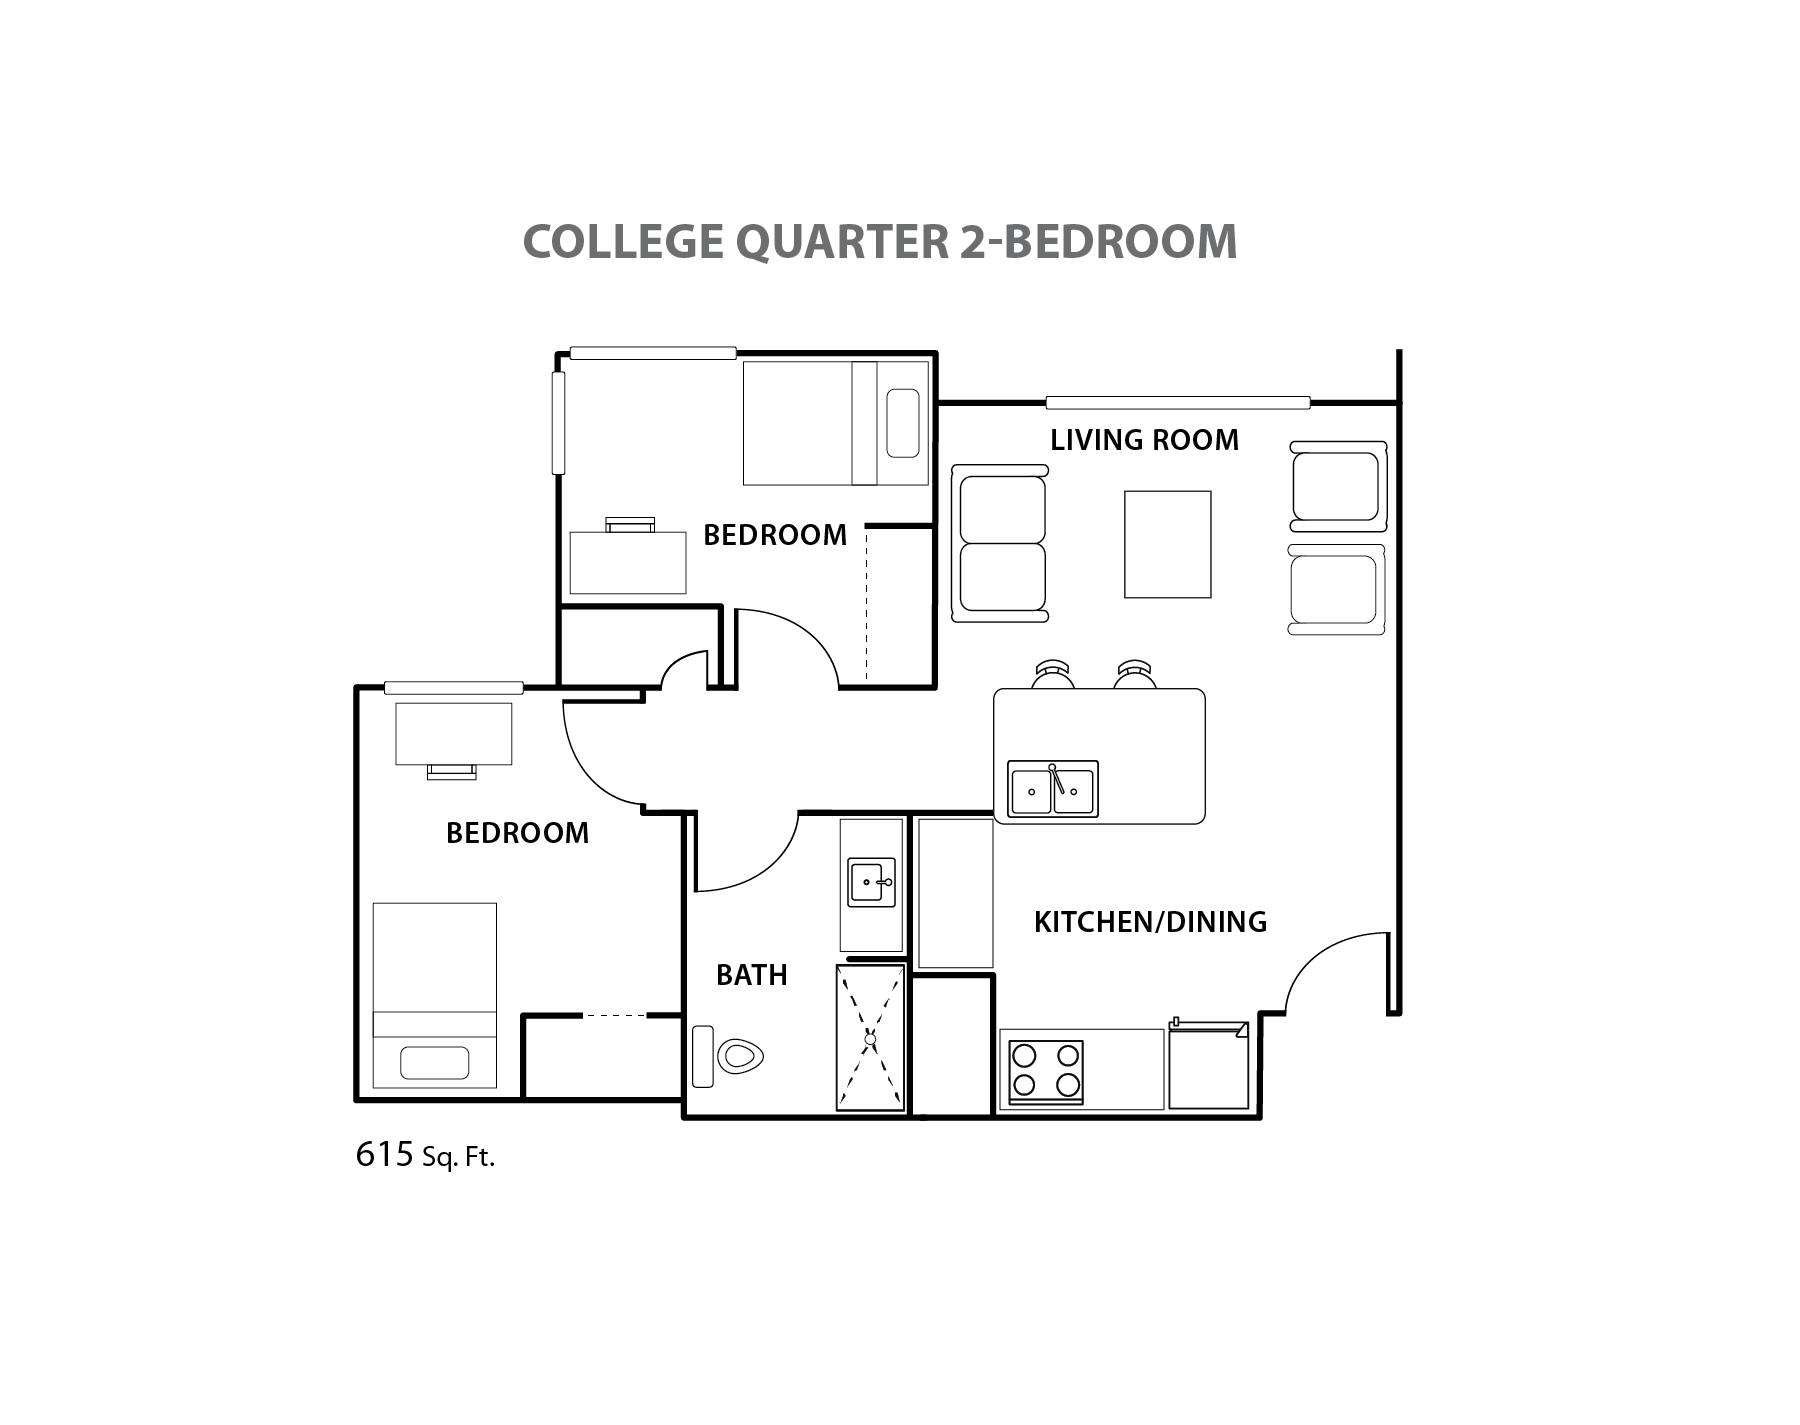 Cq floor plans residence university of saskatchewan for Floor plans lafayette college